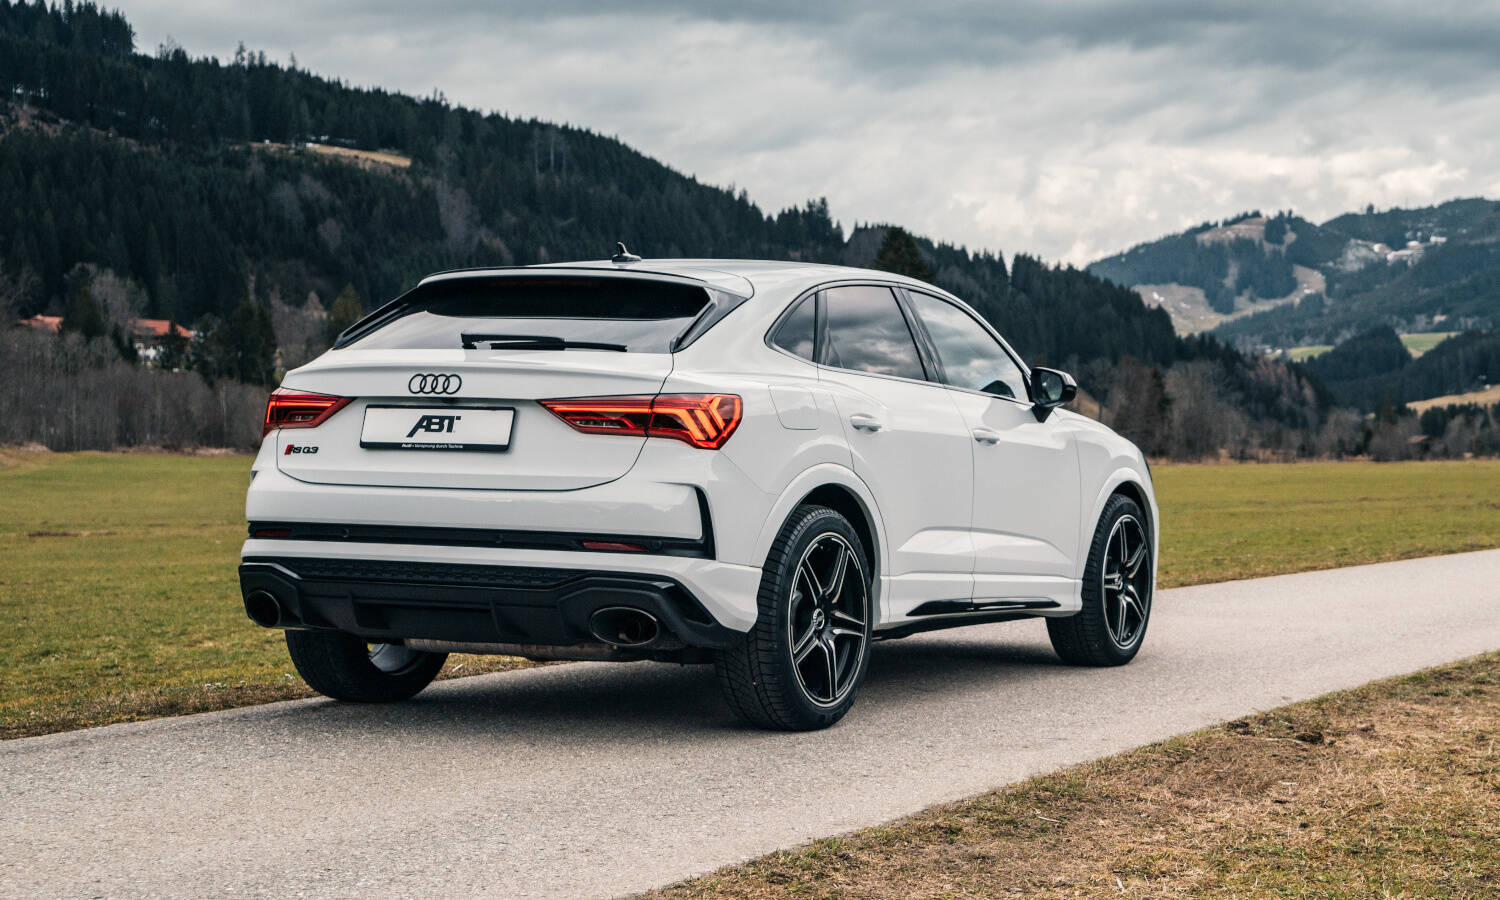 Abt Sportsline Upgrades Audi Rs Q3 To 440 Hp And New Wheels Abt Sportsline